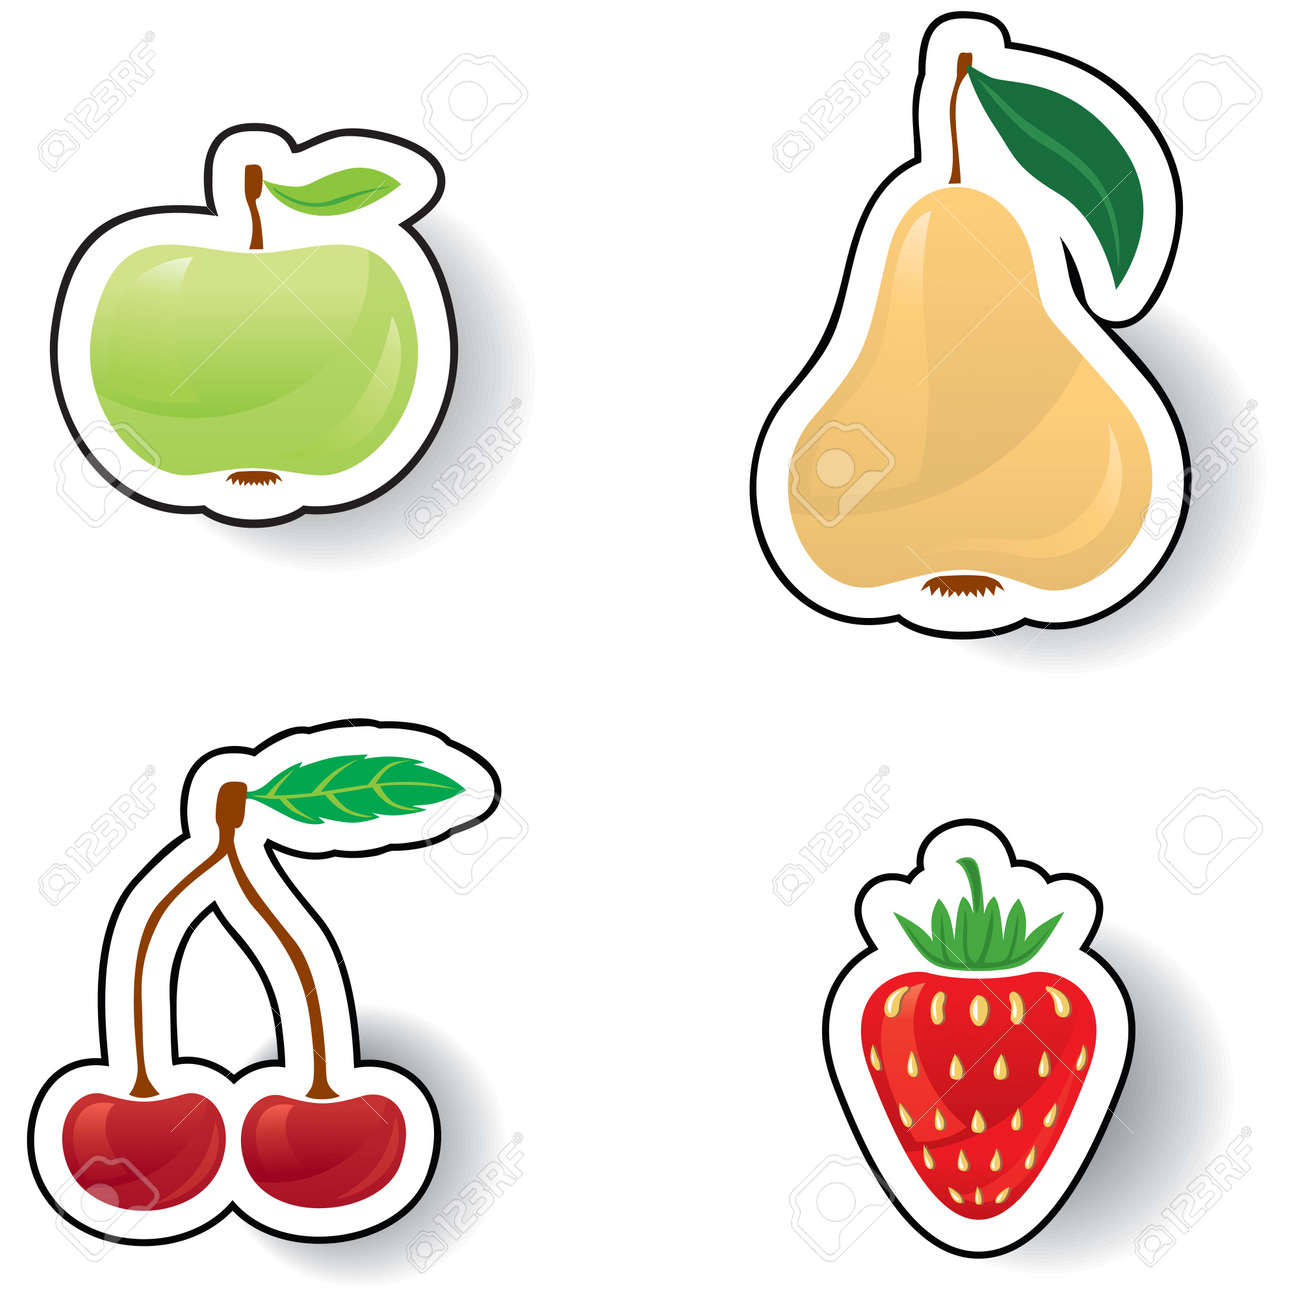 Colorful fruits and berries: apples, pears, strawberries and cherries Stock Vector - 16212592